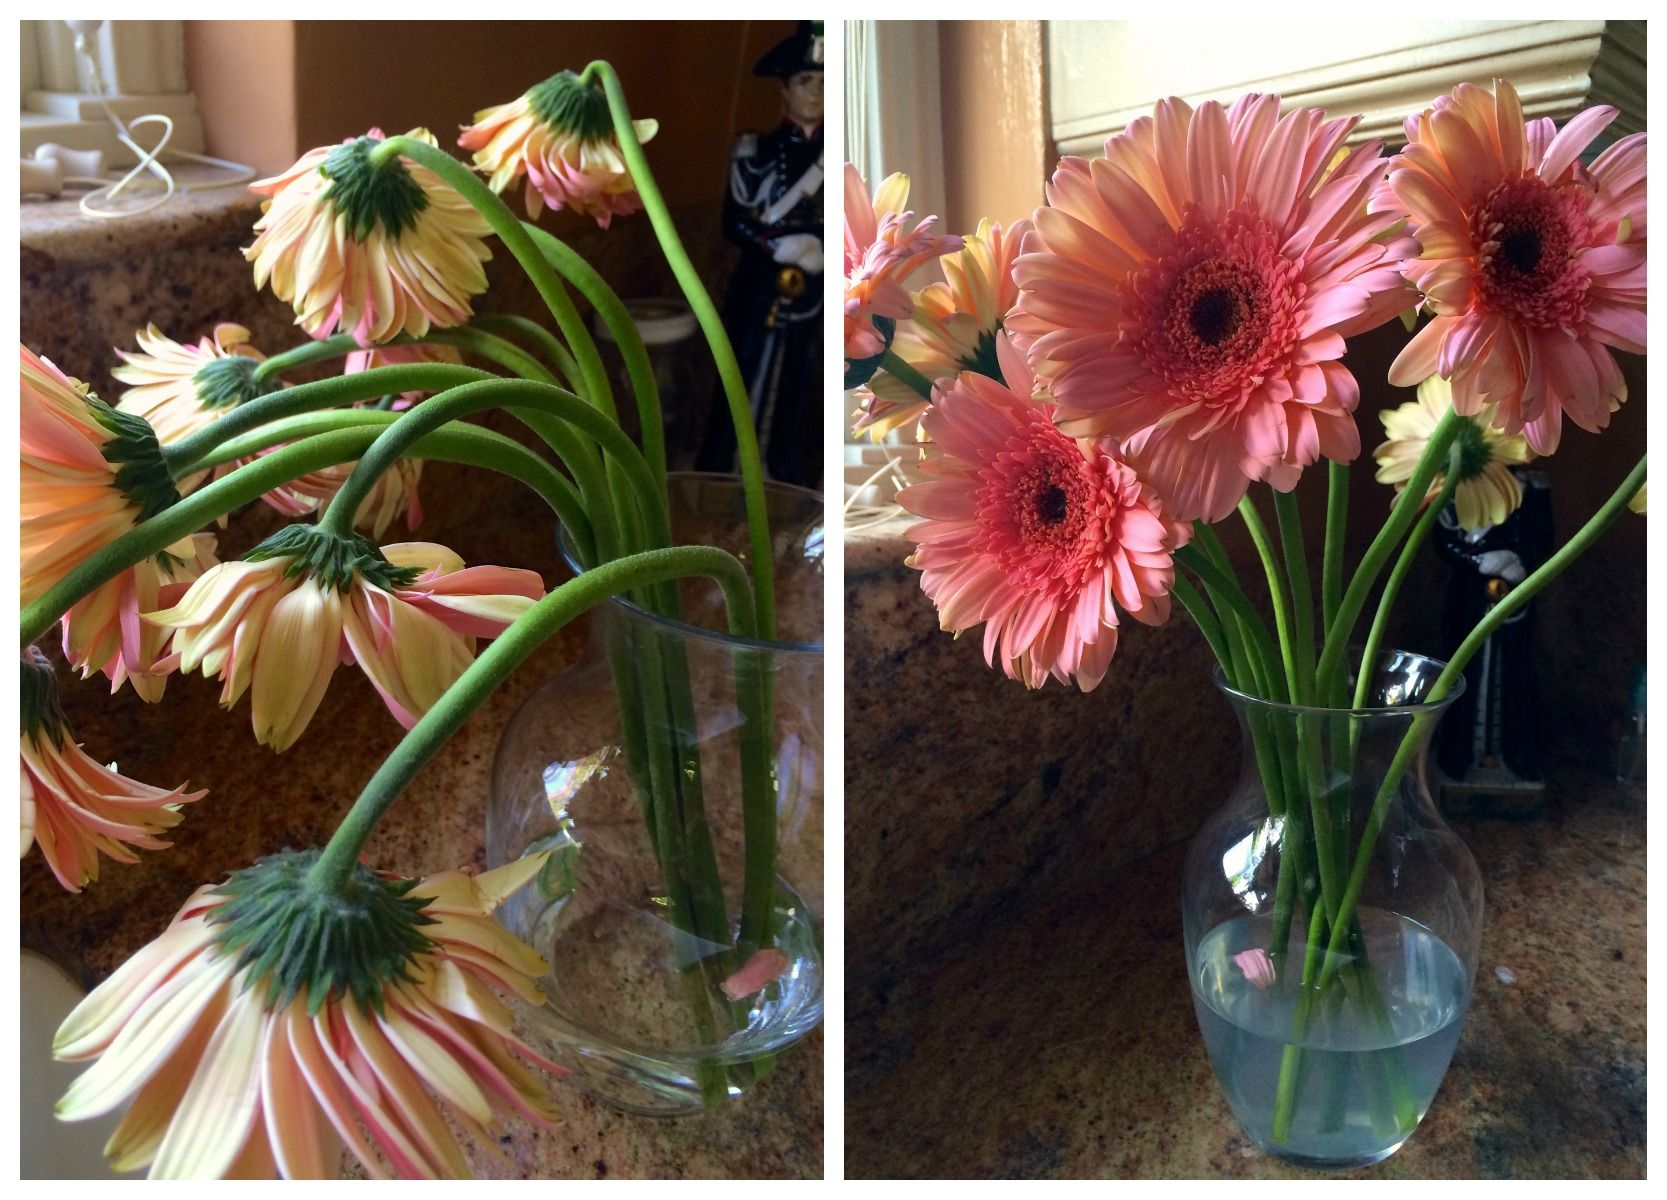 How to revive gerbera daisies gerbera daisy wilted